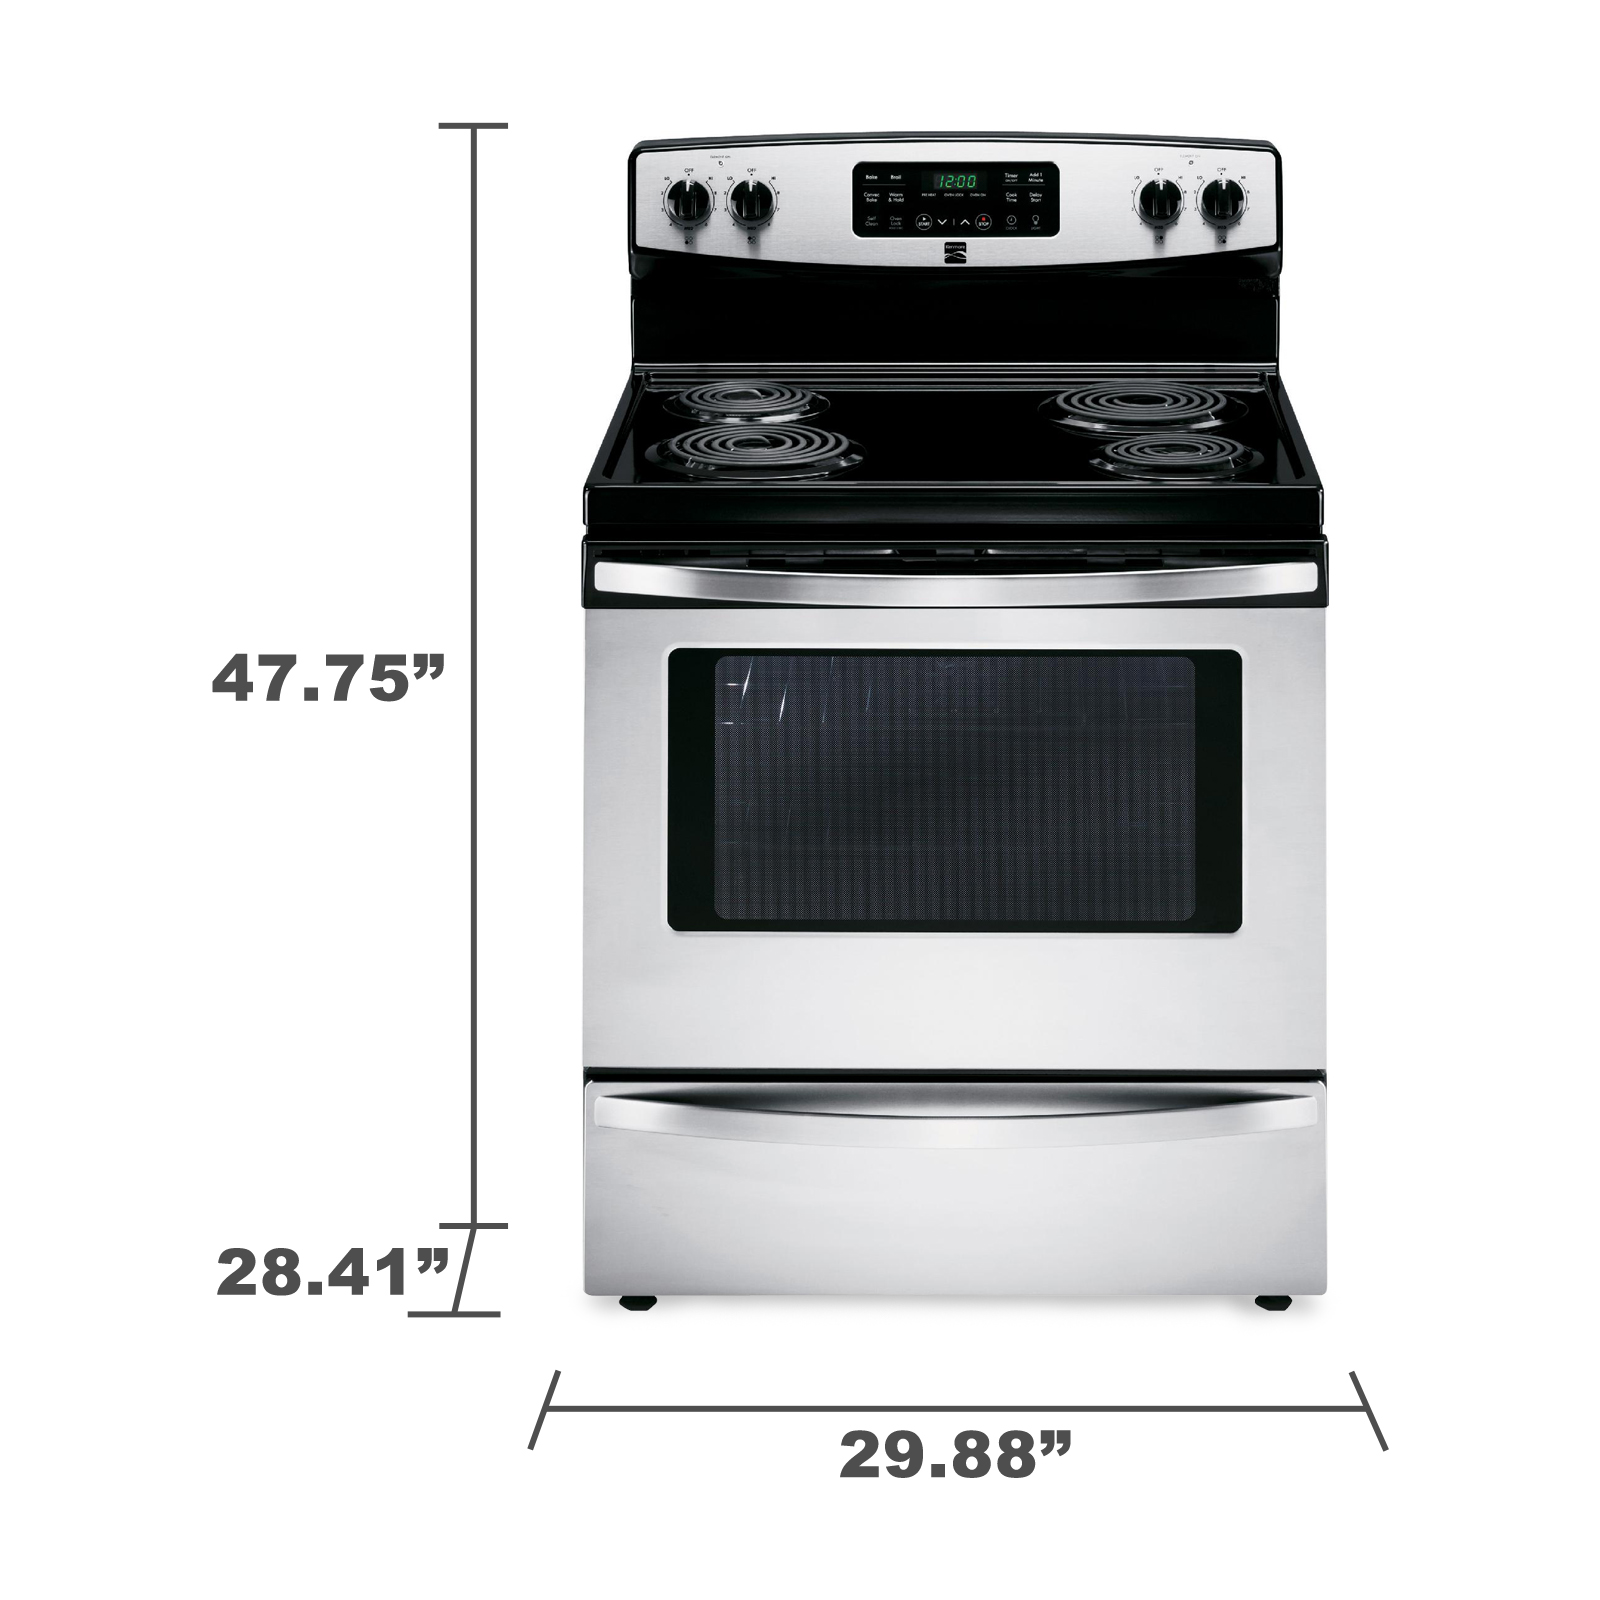 Kenmore 94153 5.4 cu. ft. Self-Cleaning Electric Range w / Convection Oven - Stainless Steel